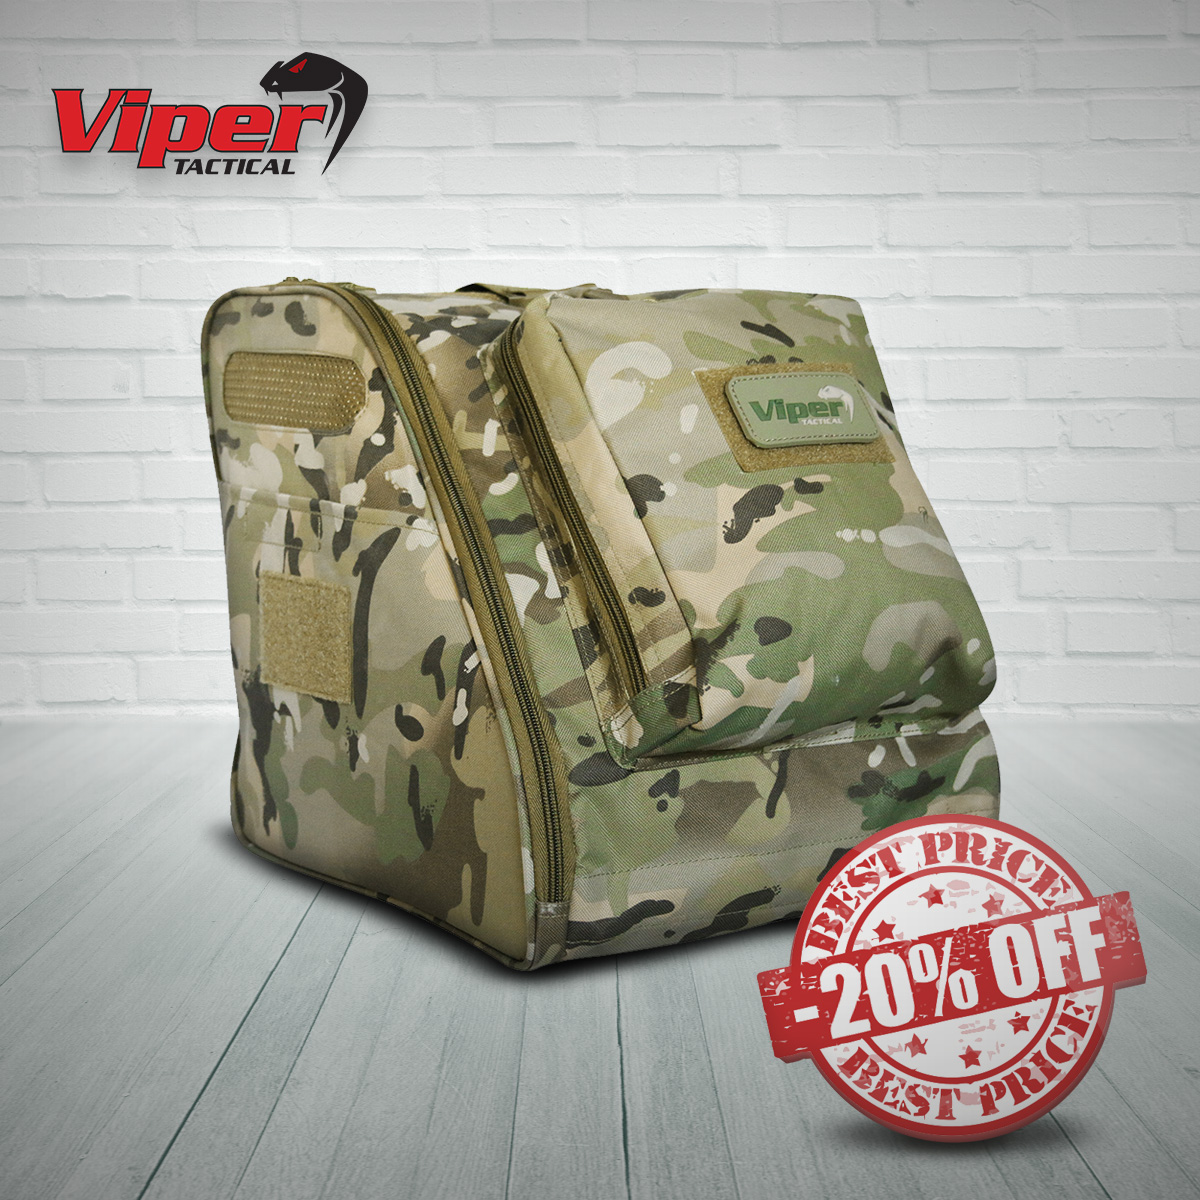 !-sales-1200x1200-viper-tactical-boot-bag